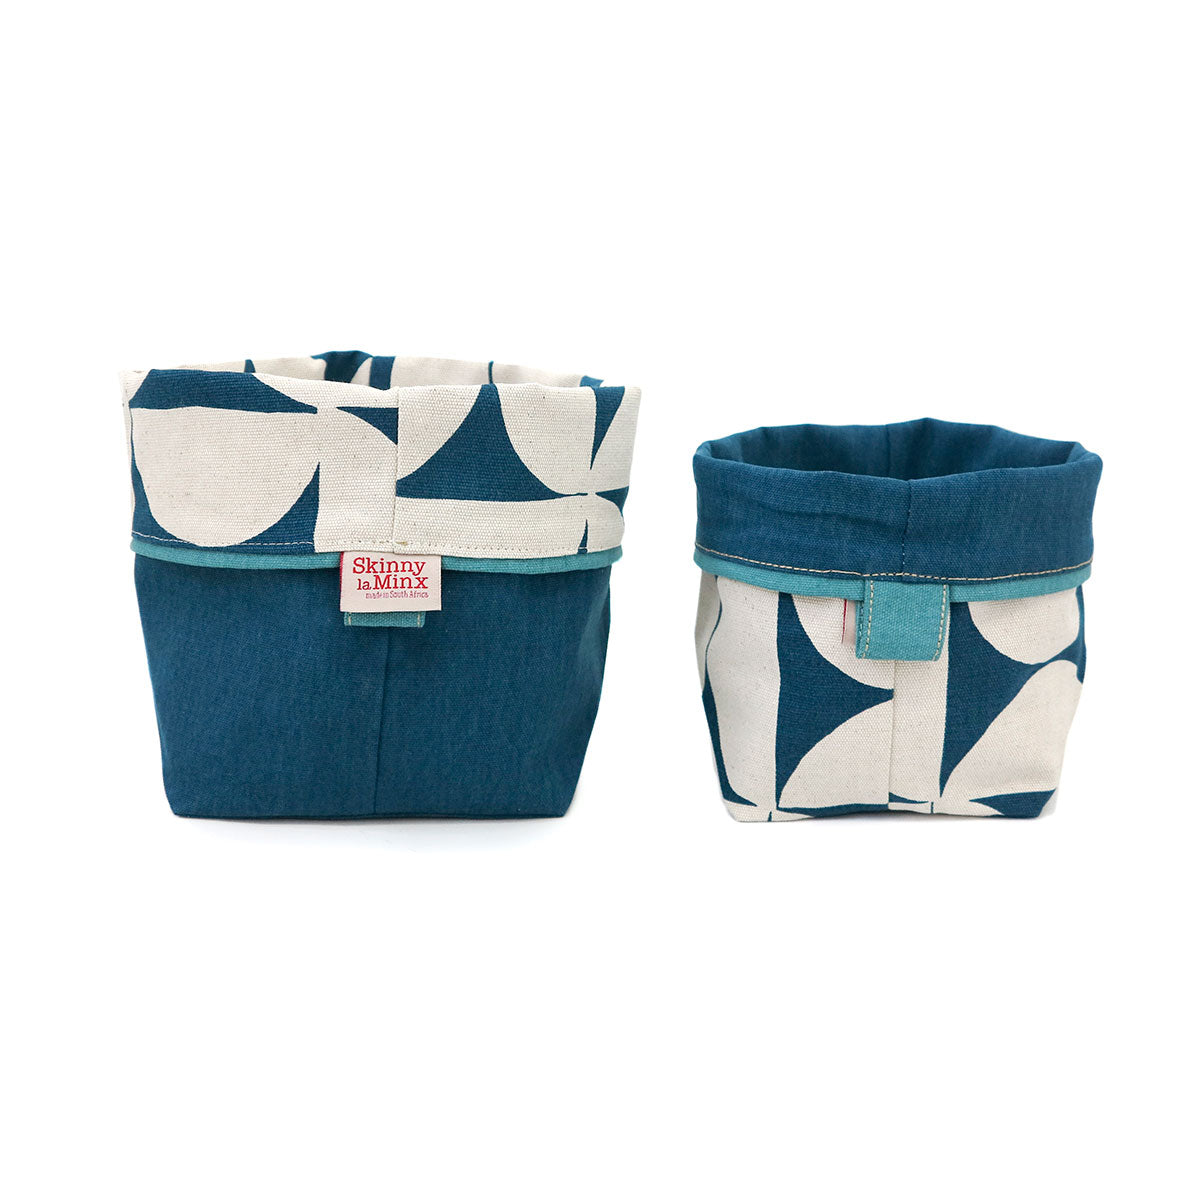 BREEZE SOFT BUCKET by Skinny laMinx at SARZA. breeze, containers, holder, homeware, planters, Skinny laMinx, soft bucket, soft buckets, storage